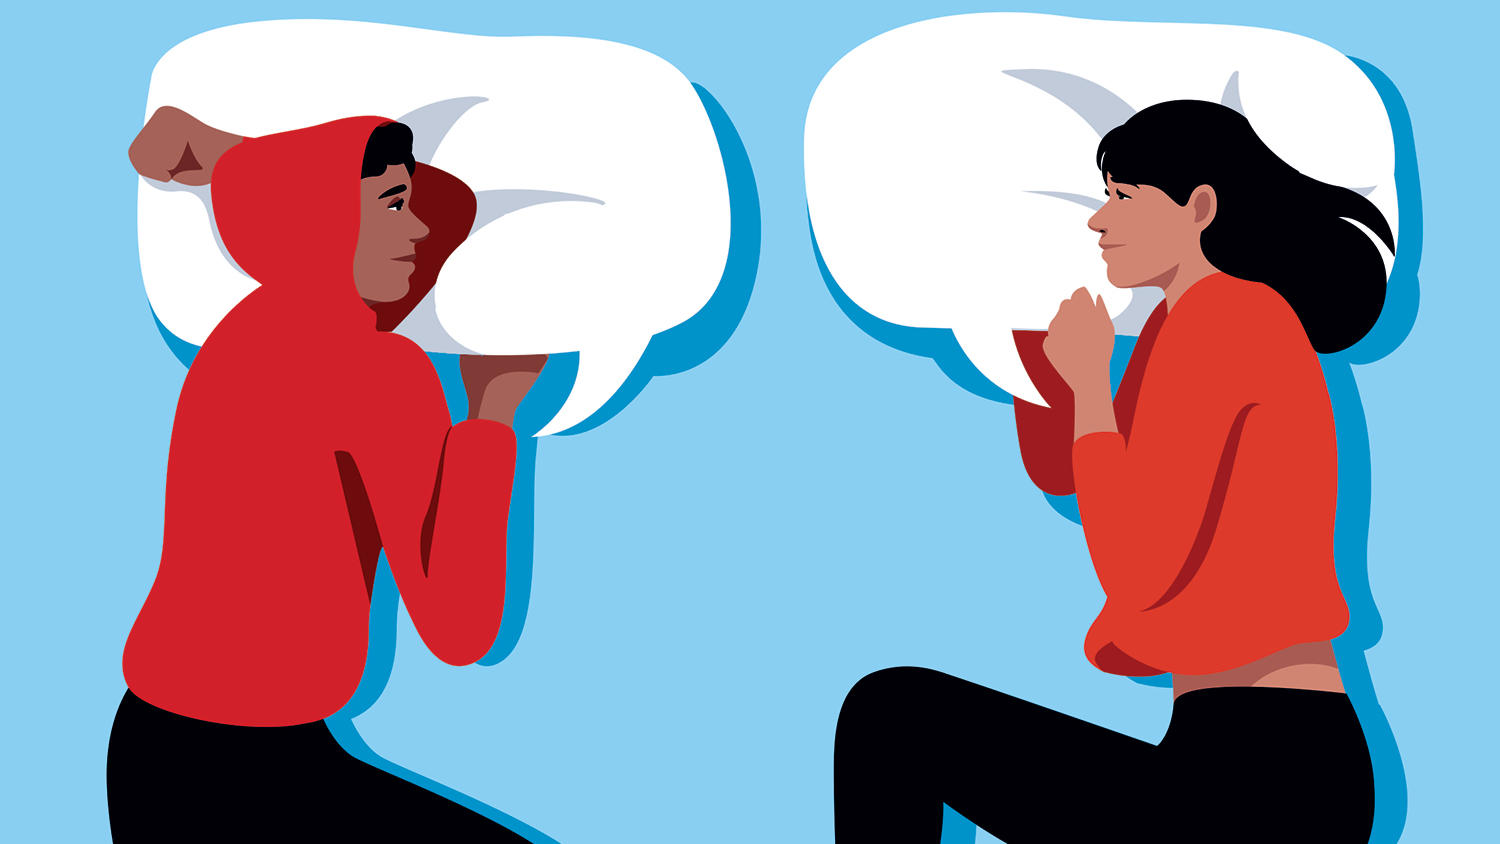 Illustration for Columbia Magazine by Anna Parini of two young people talking to each other in bed